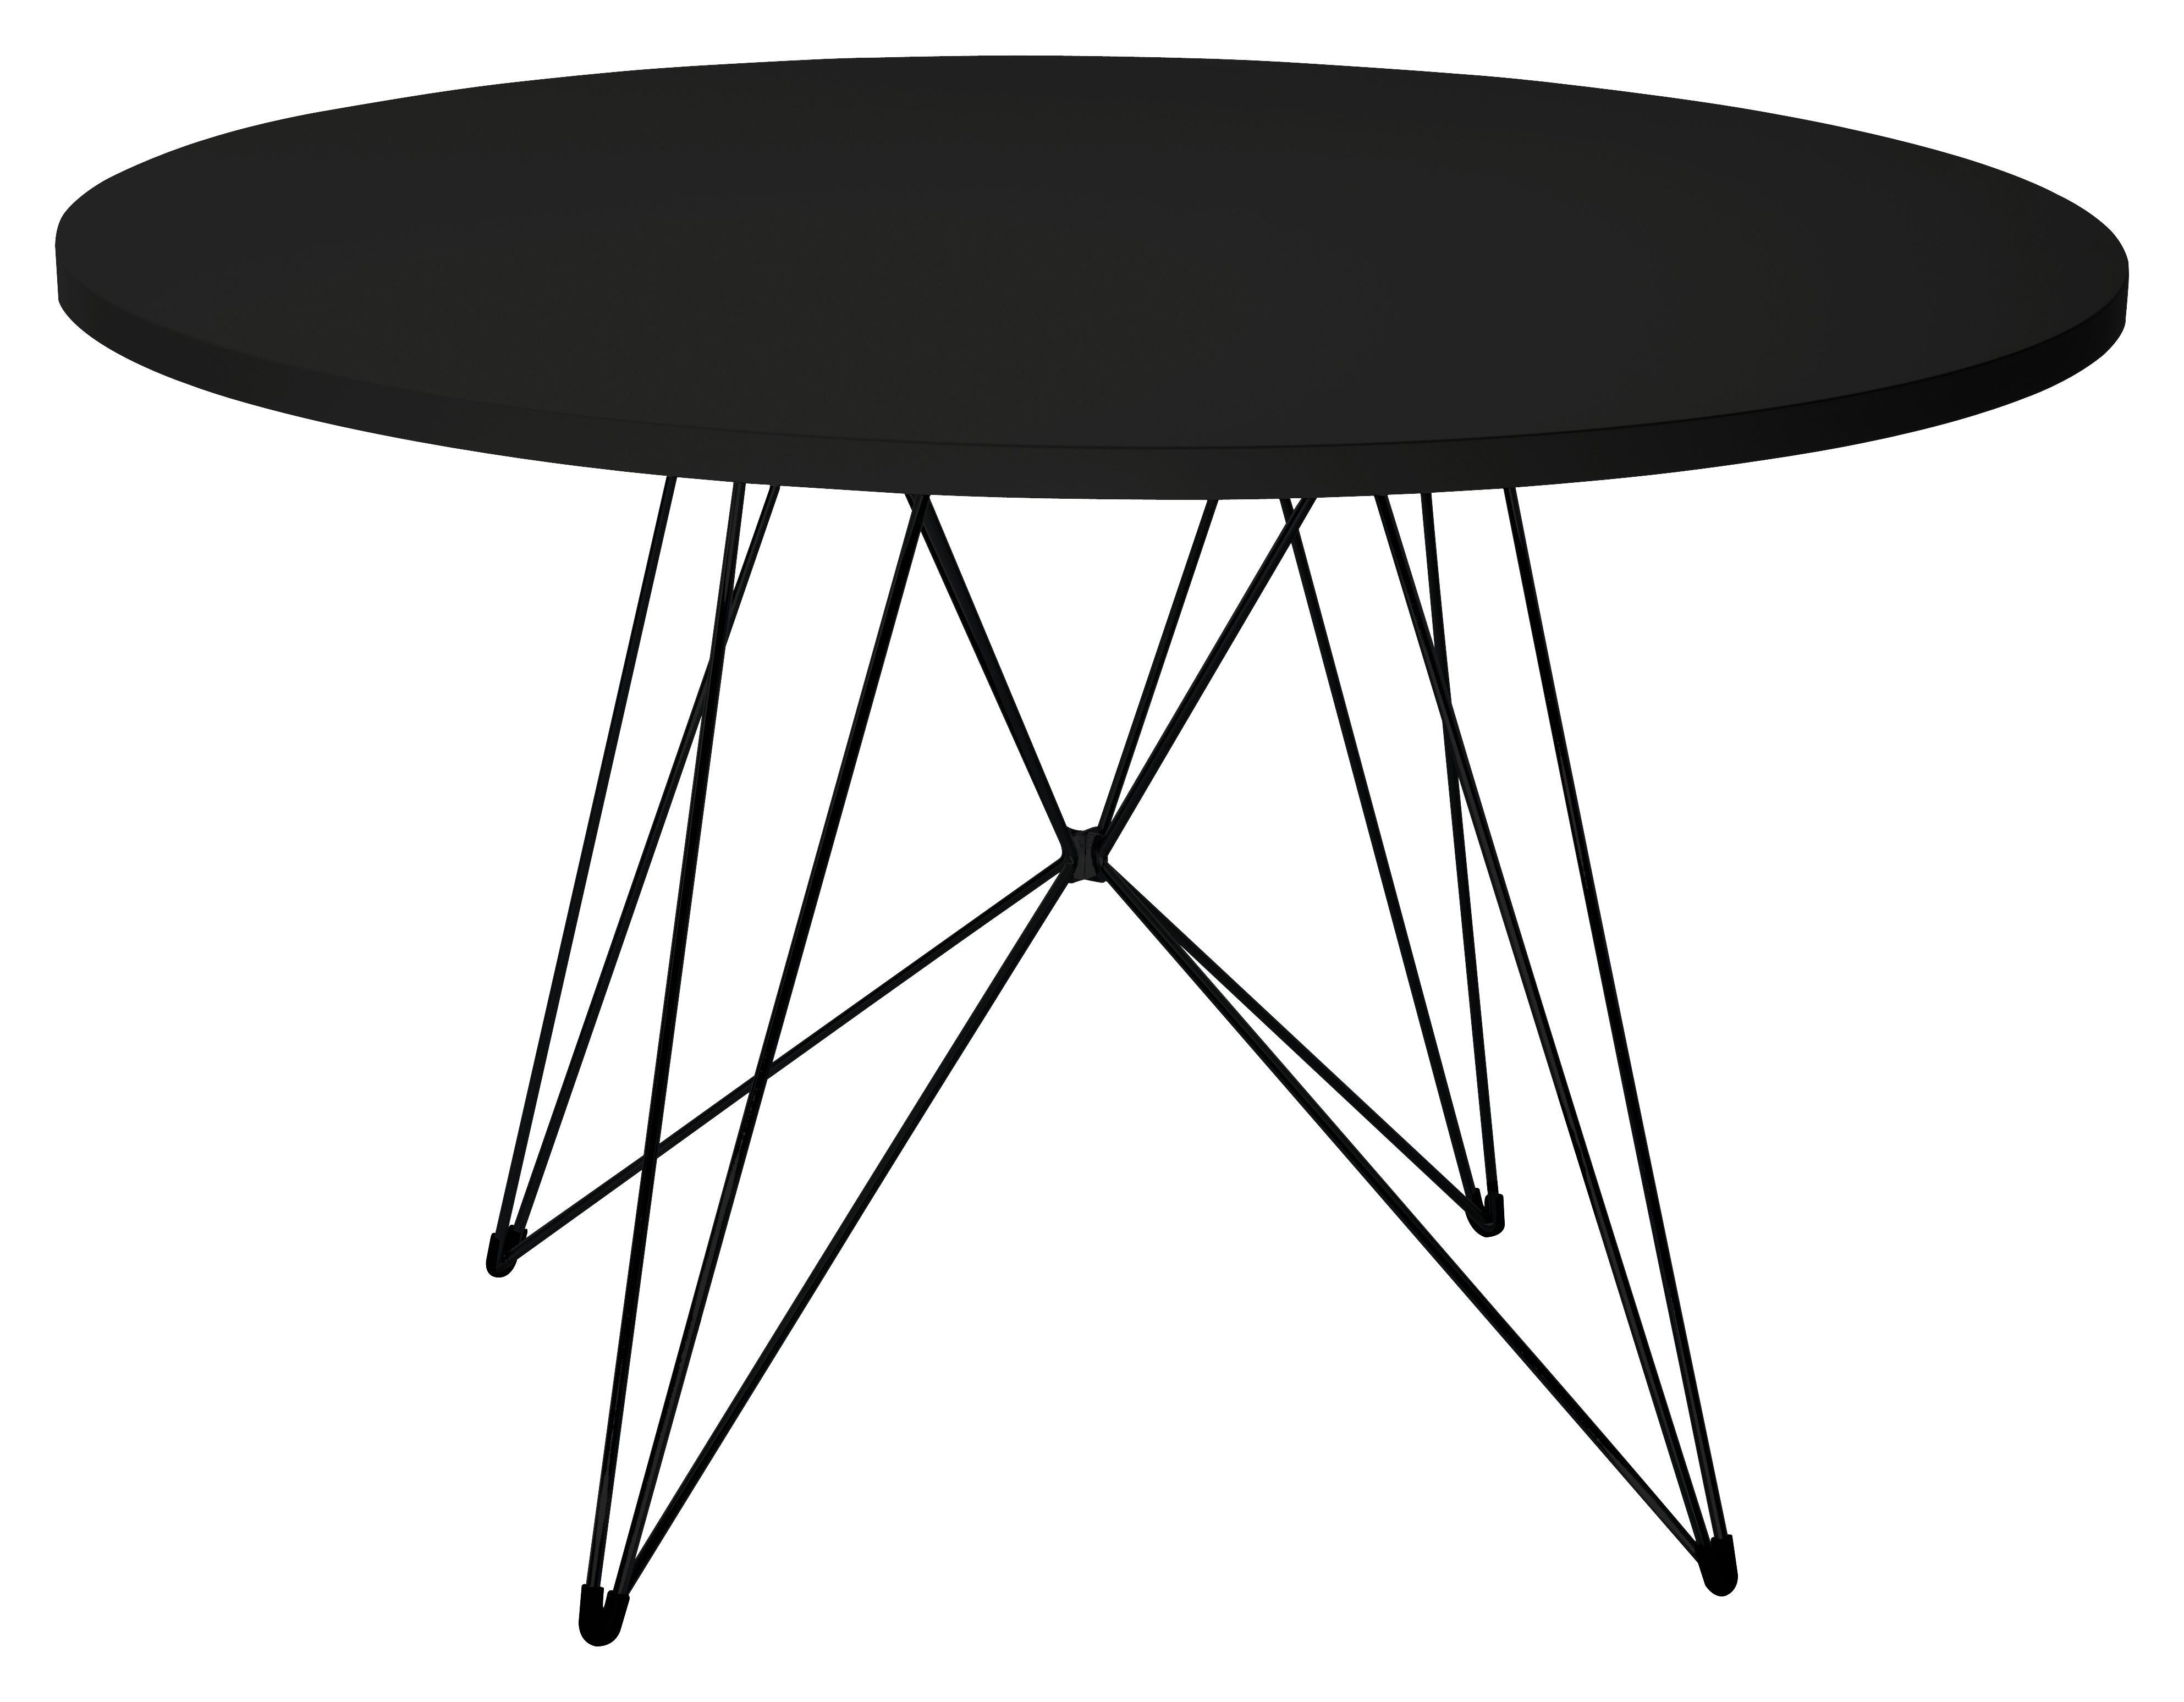 xz3 table round 120 cm black black base by magis